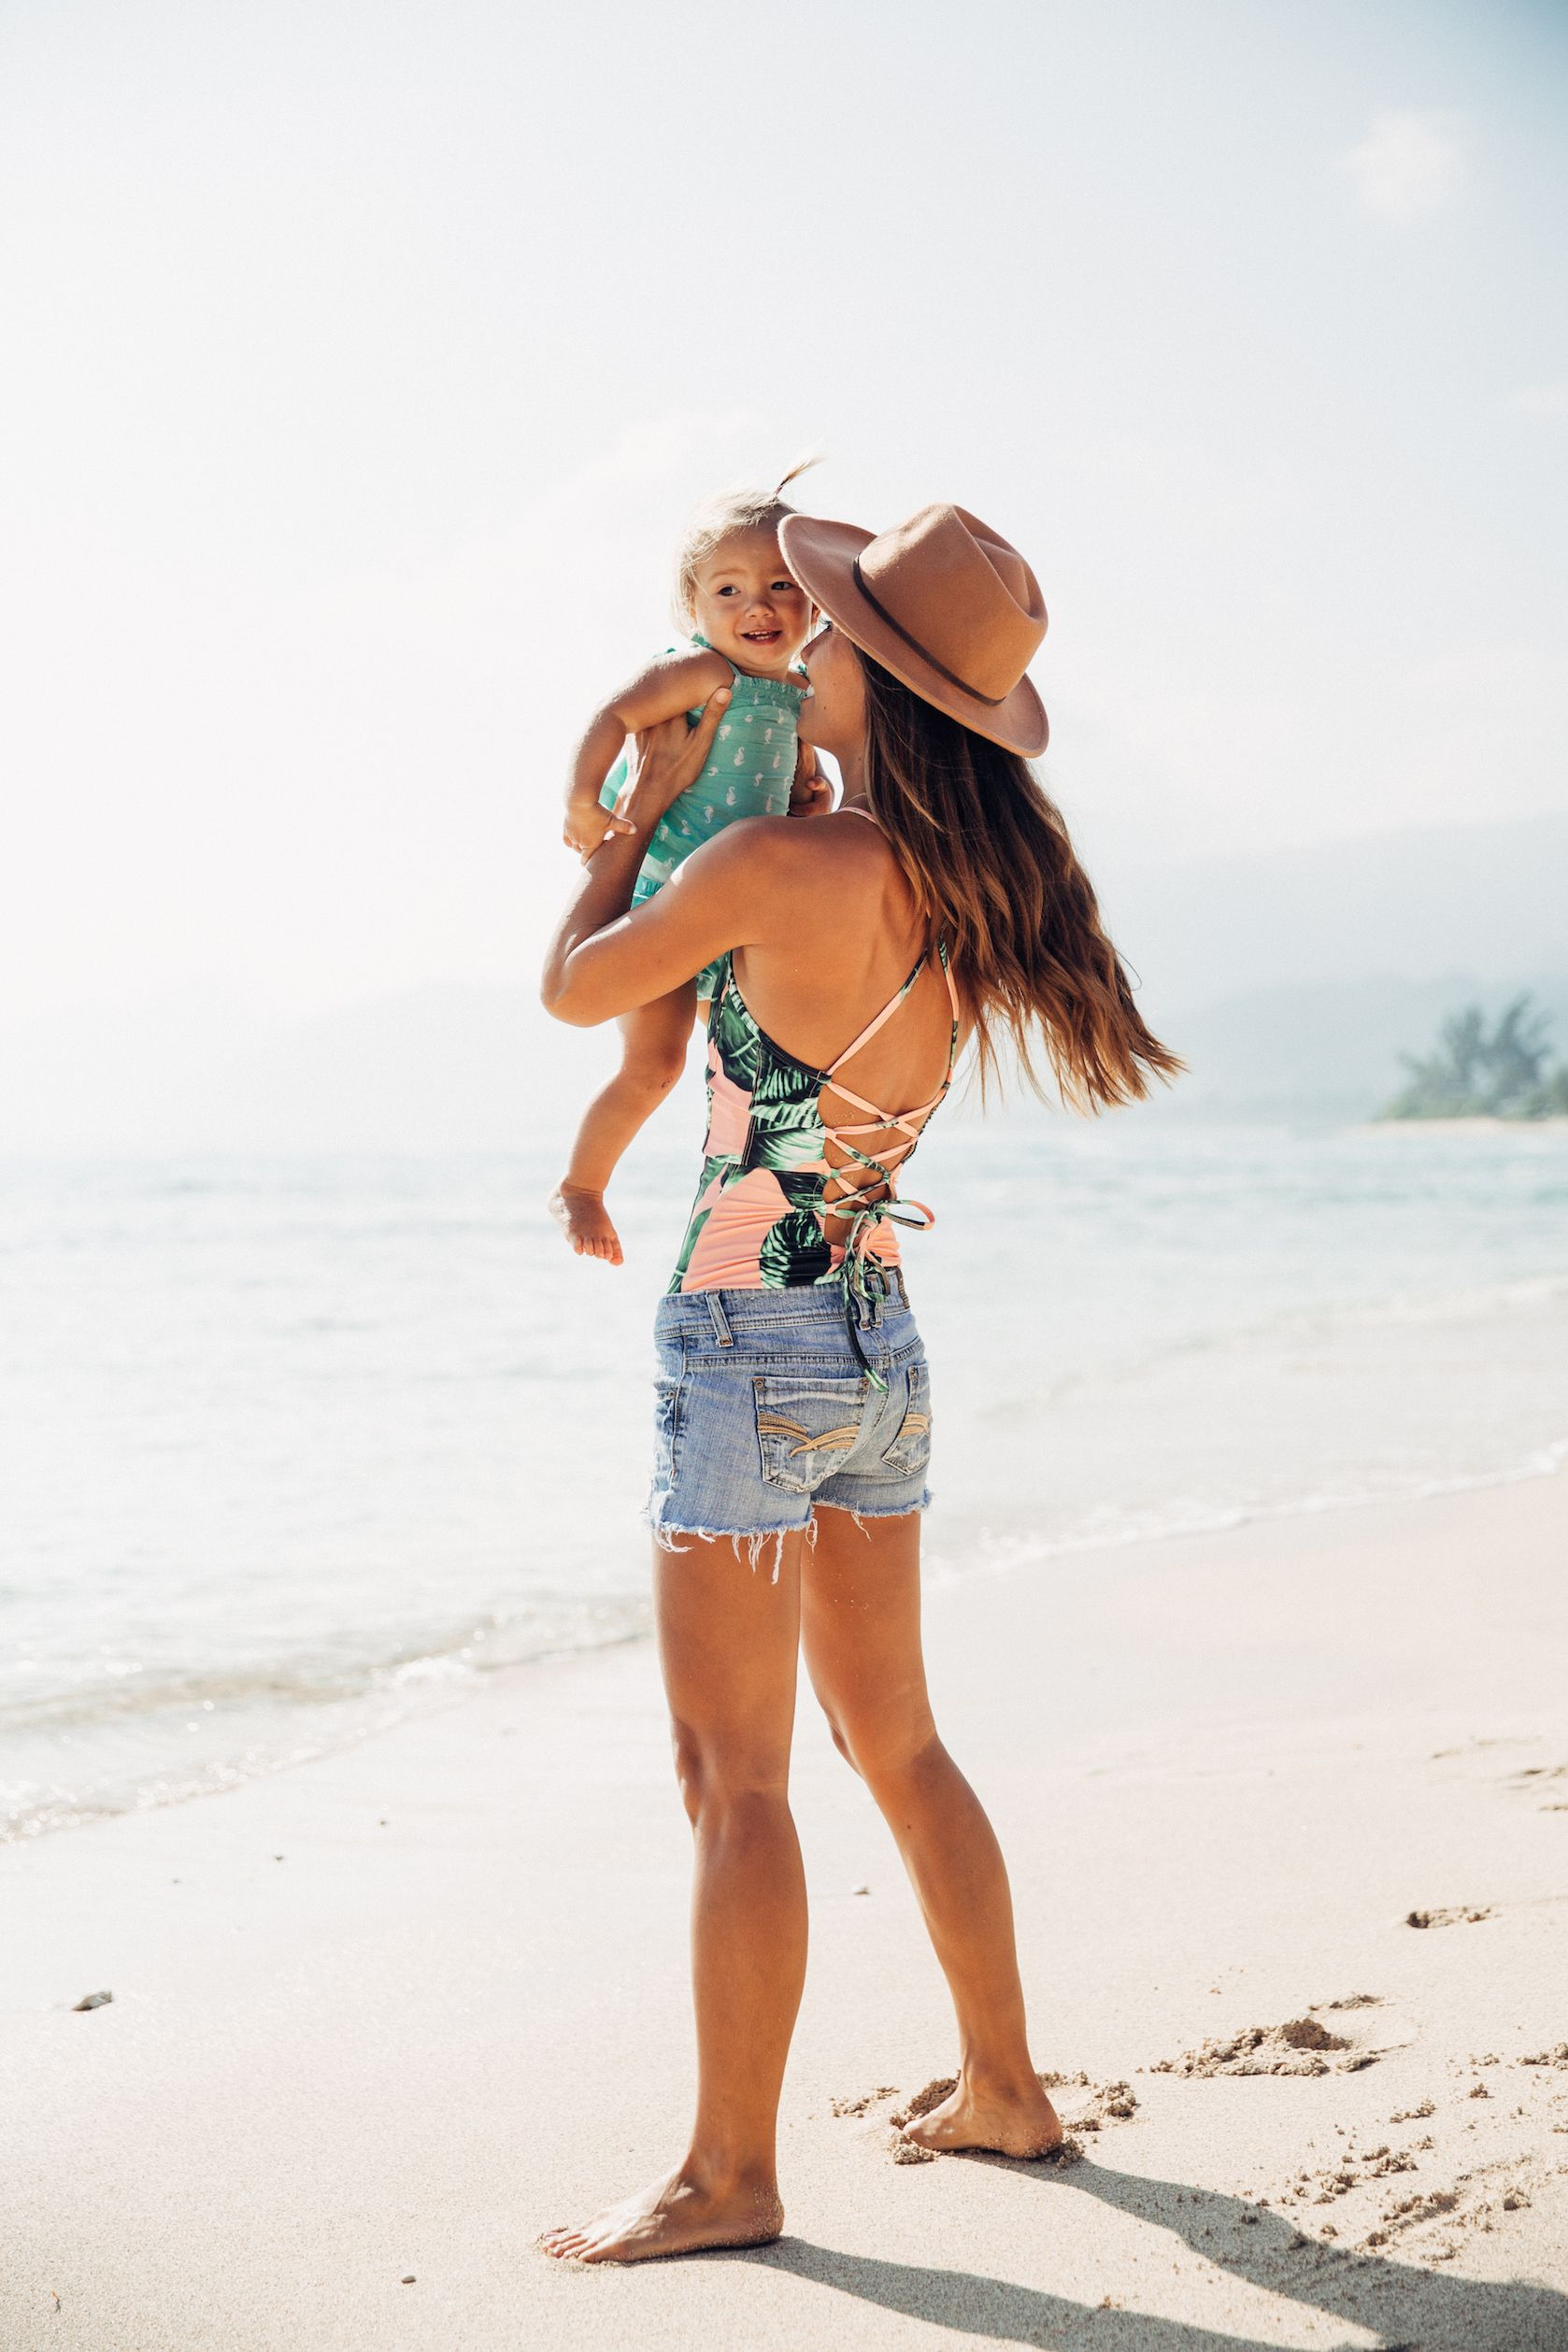 a84c21352ca Suits so cute, you'll want to wear them in and out of the water! {The  Waikiki Swimsuit} worn under jean shorts for a fun & comfortable beach girl  look!